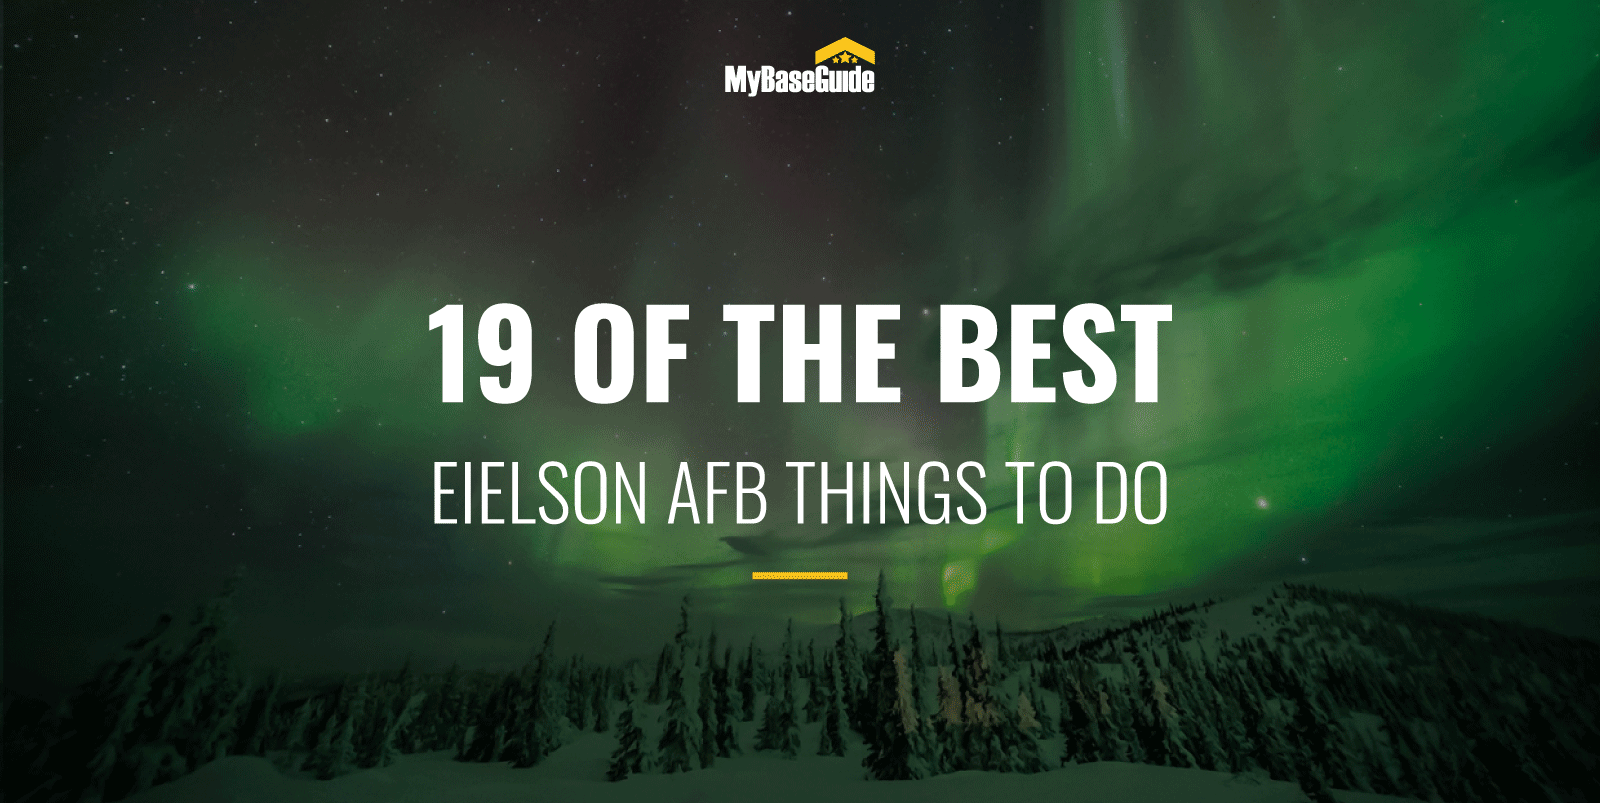 19 Of the Best Eielson AFB Things to Do